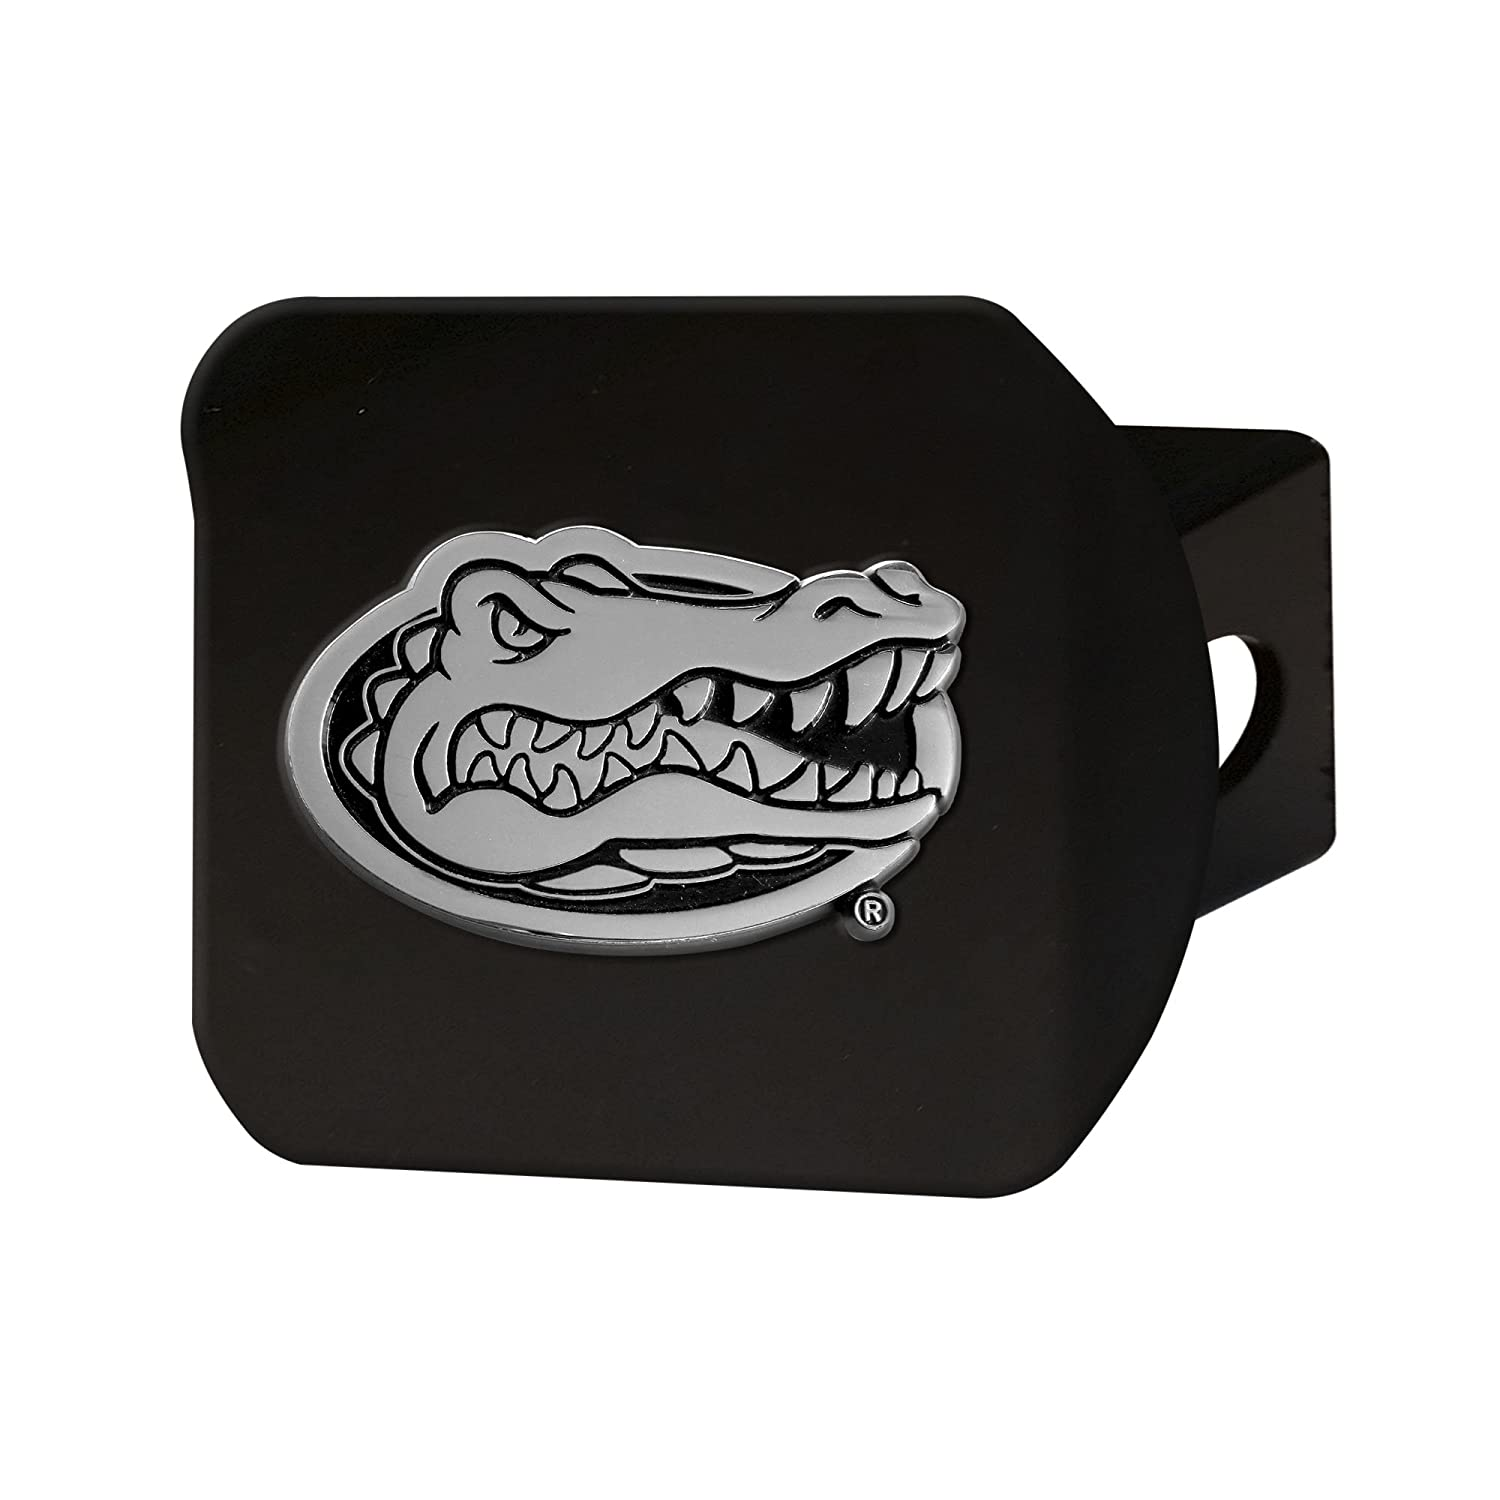 FANMATS 21028 Team Color 4-1//2 x 3-3//8 Florida Black Hitch Cover